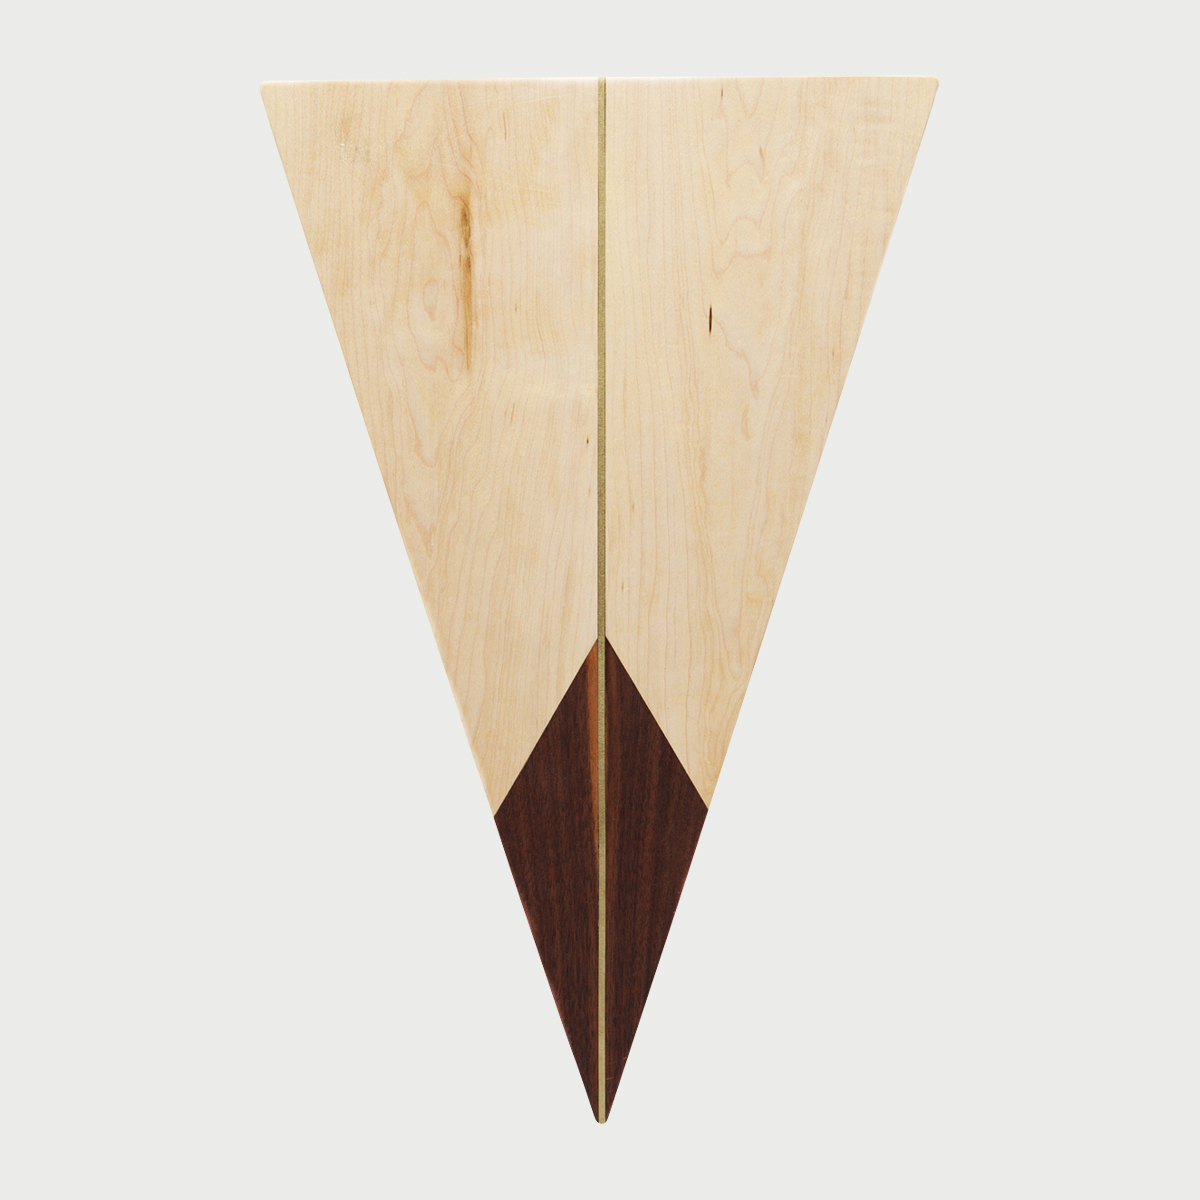 Chris earl triangle cheeseboard